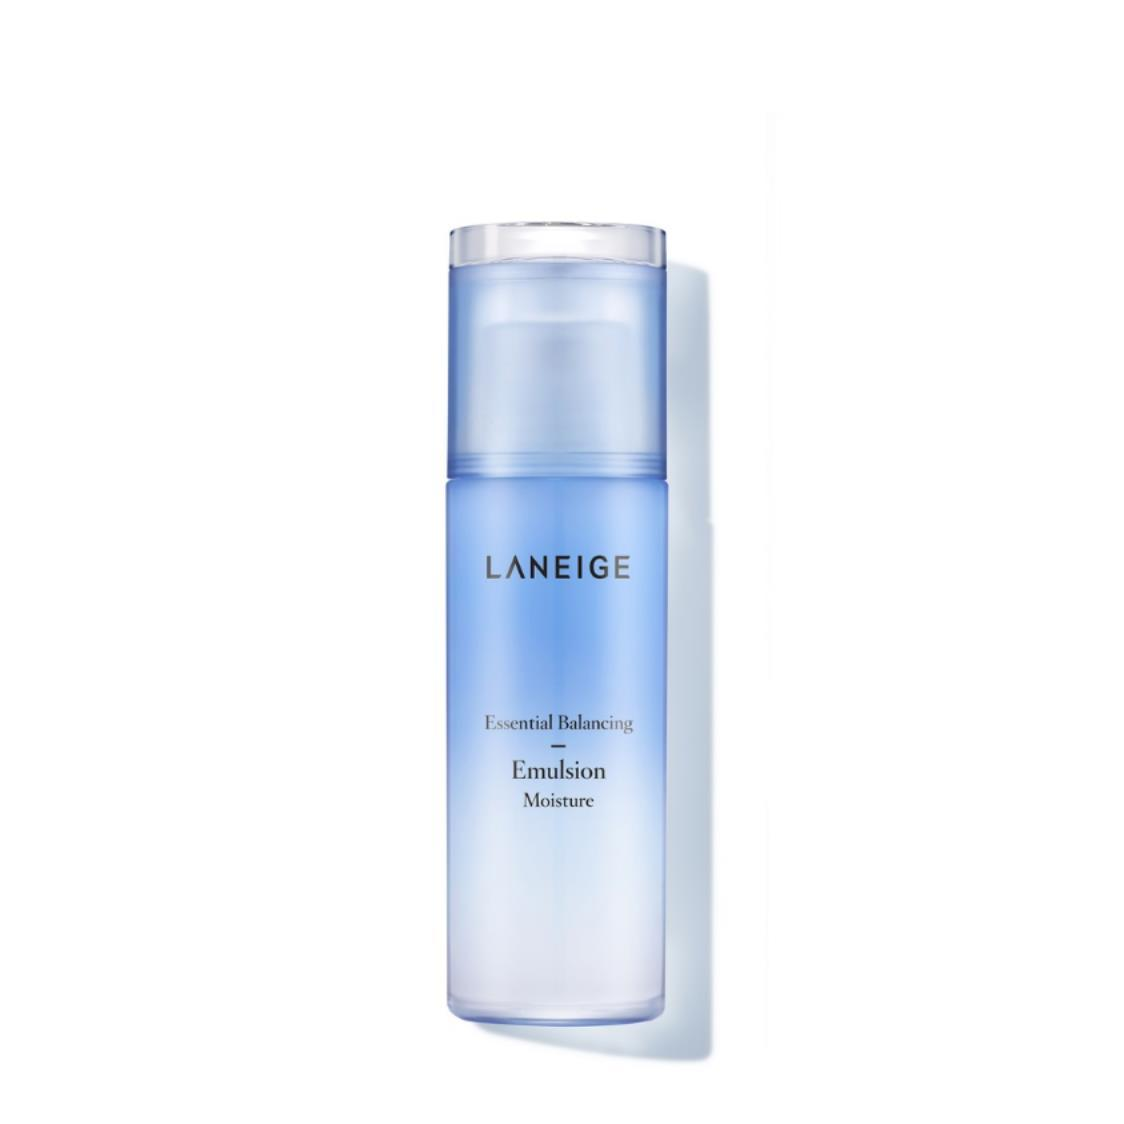 Essential Balancing Emulsion Moisture 120ml